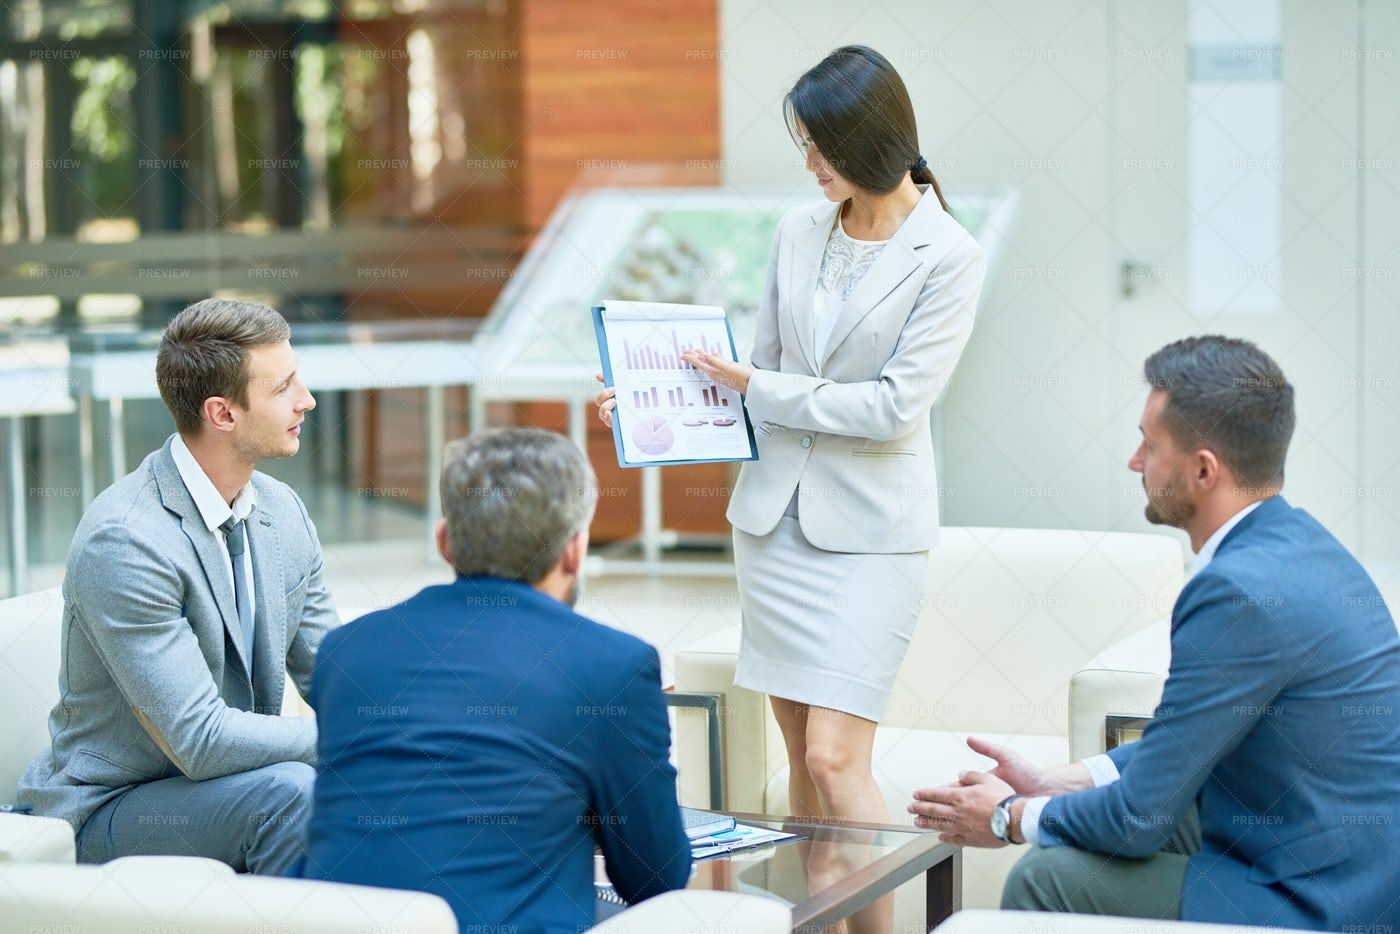 Working Meeting Of Financial...: Stock Photos